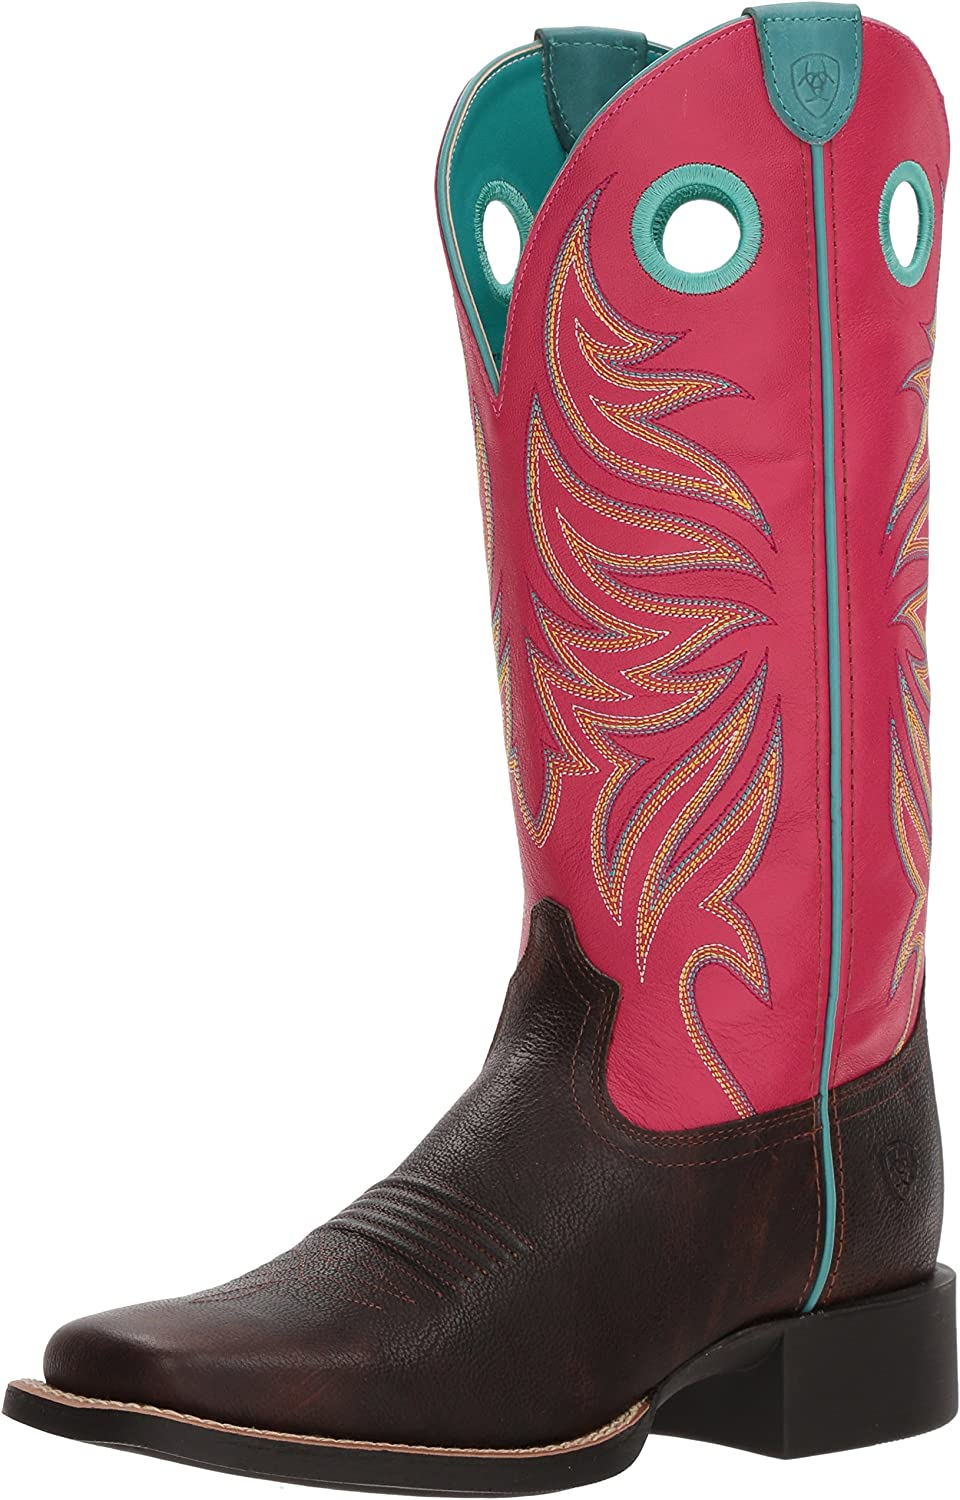 Ariat Women's Round up Ryder Western Boot